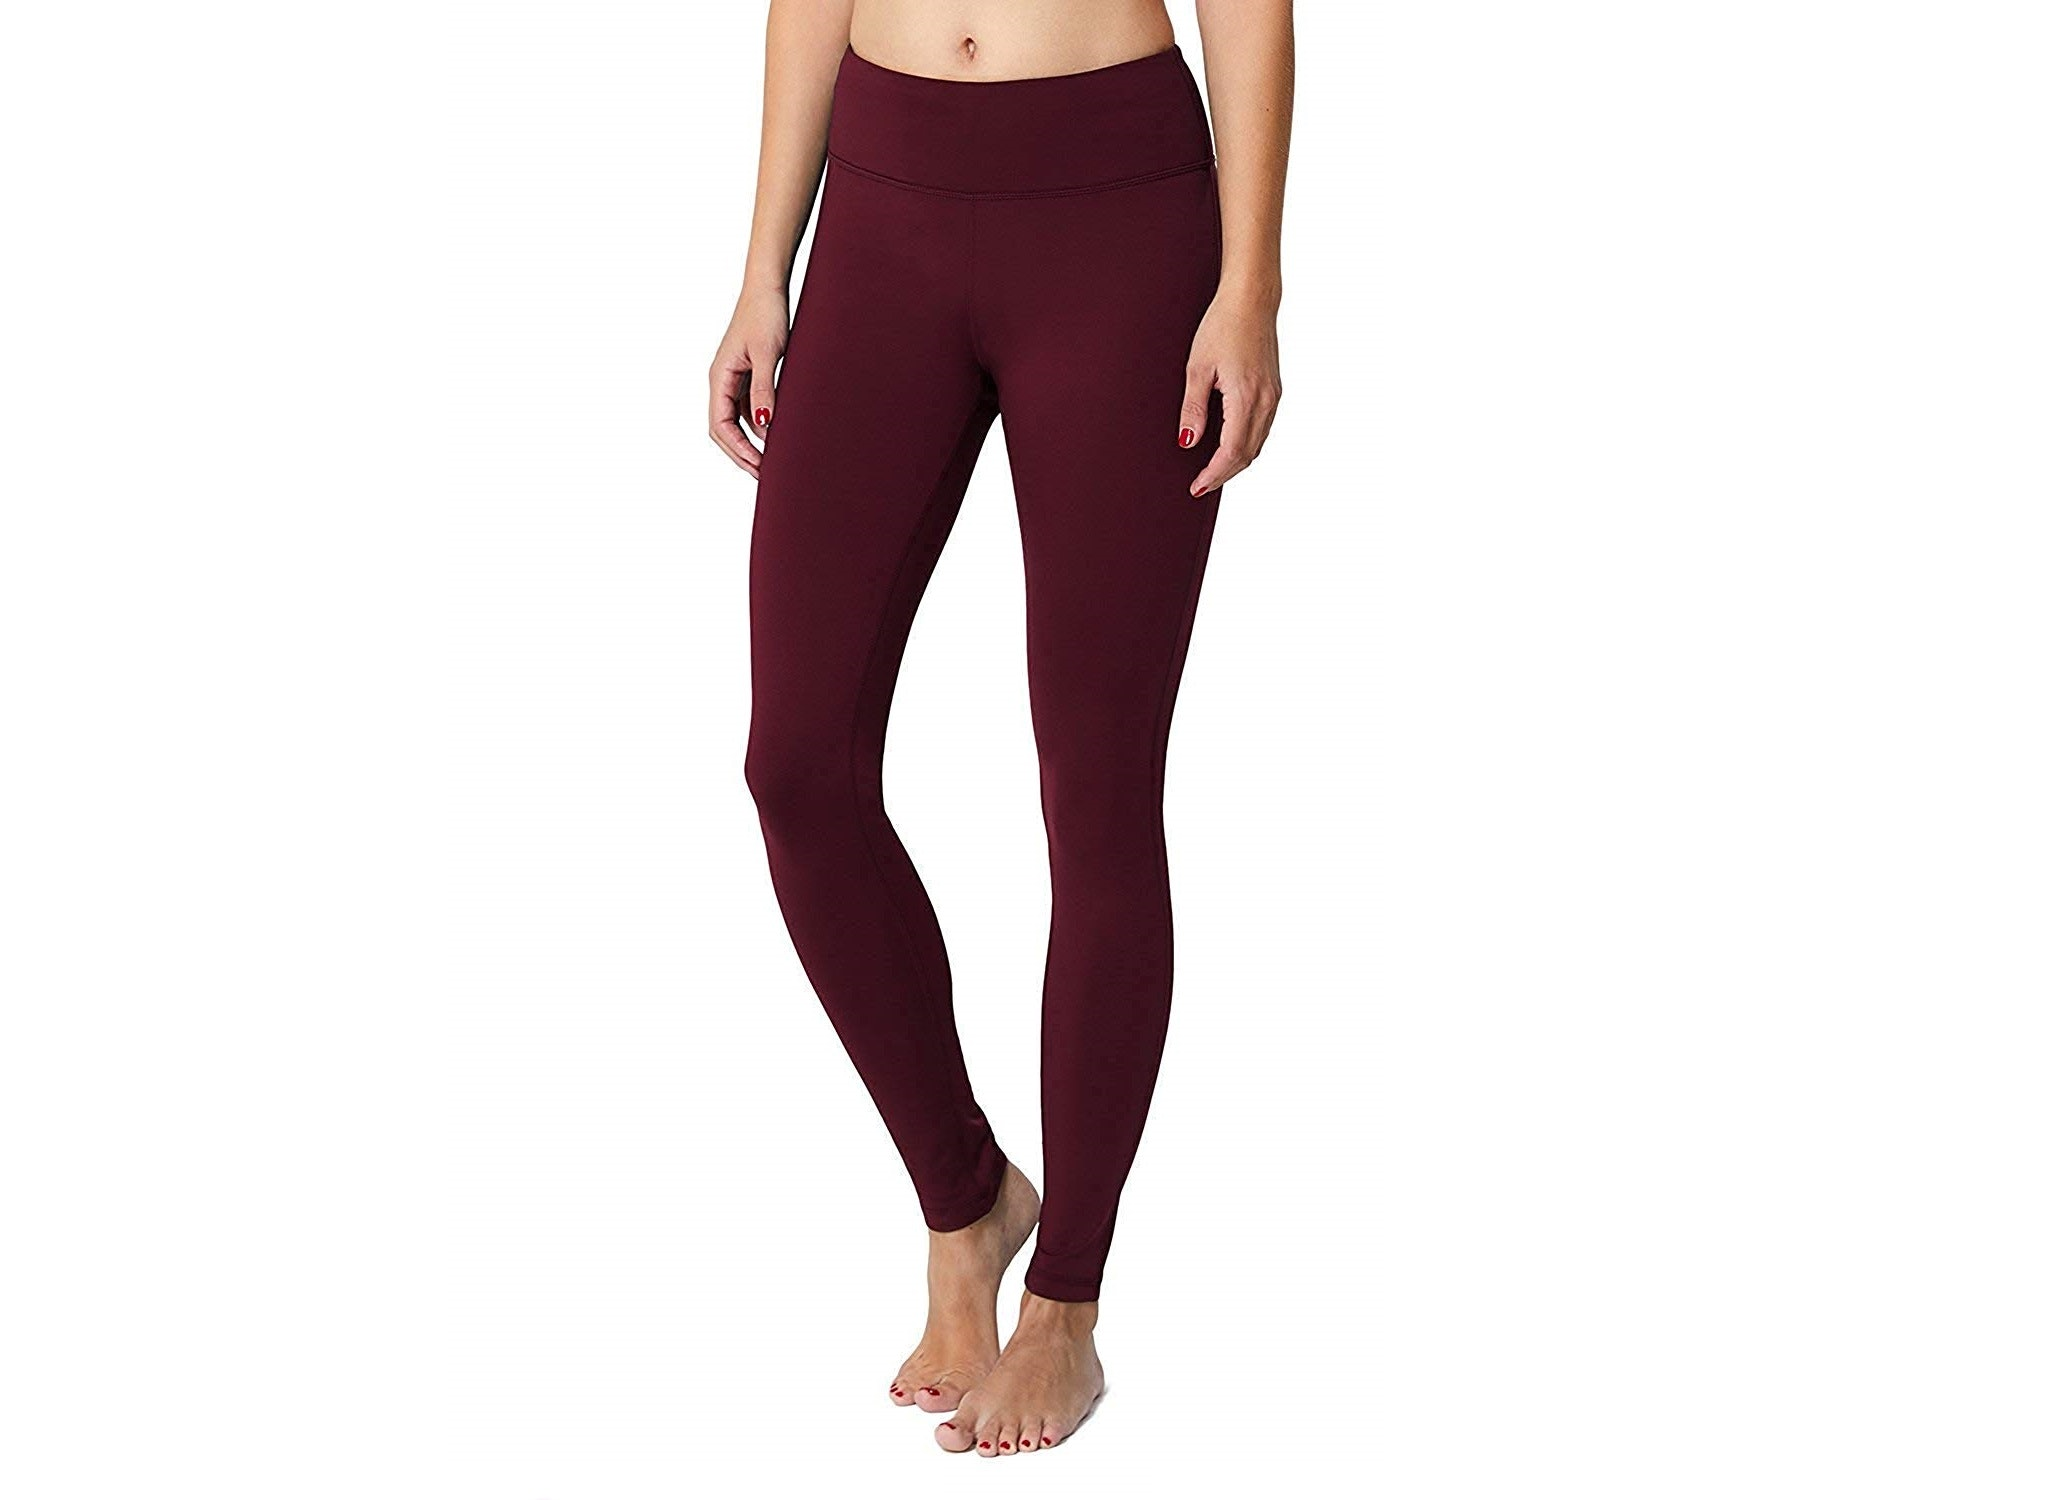 18833ad1 The 11 Best Warm Leggings For Hiking